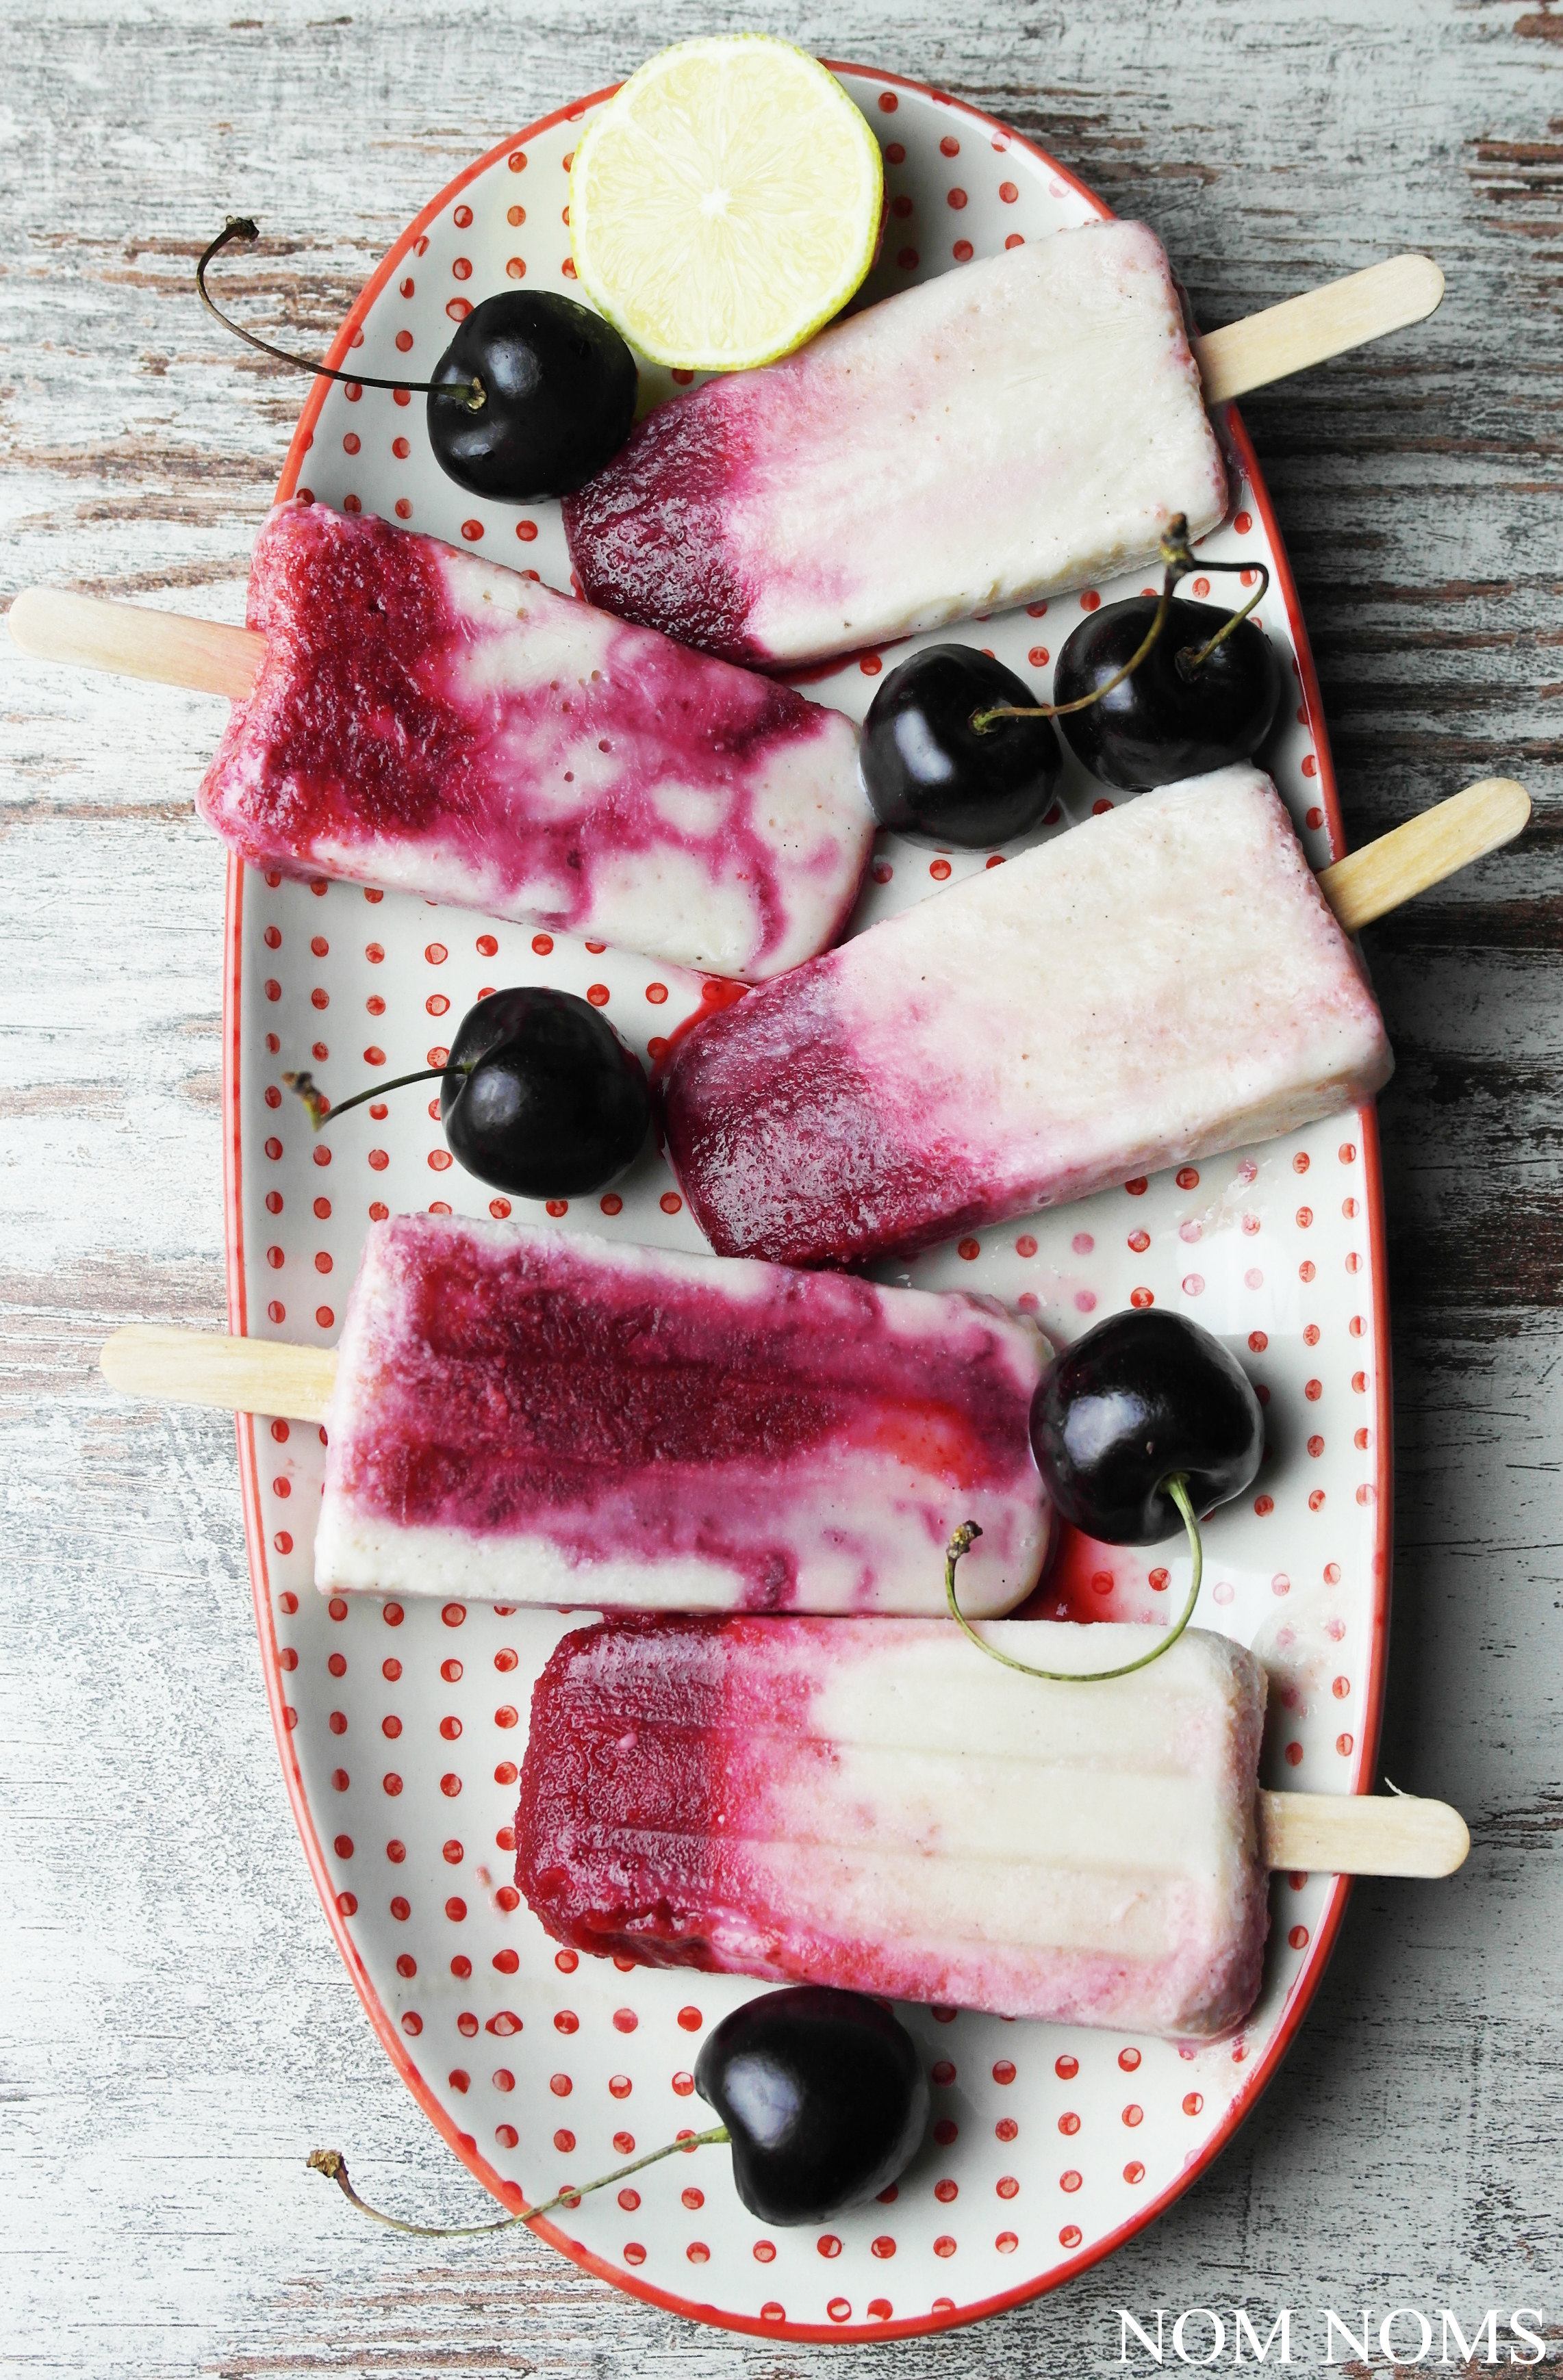 eisliebe: kirsch-bananen-popsicles mit limette (kiba-eis) | ice cream love: cherry banana popsicles with lime (vegan) ❤